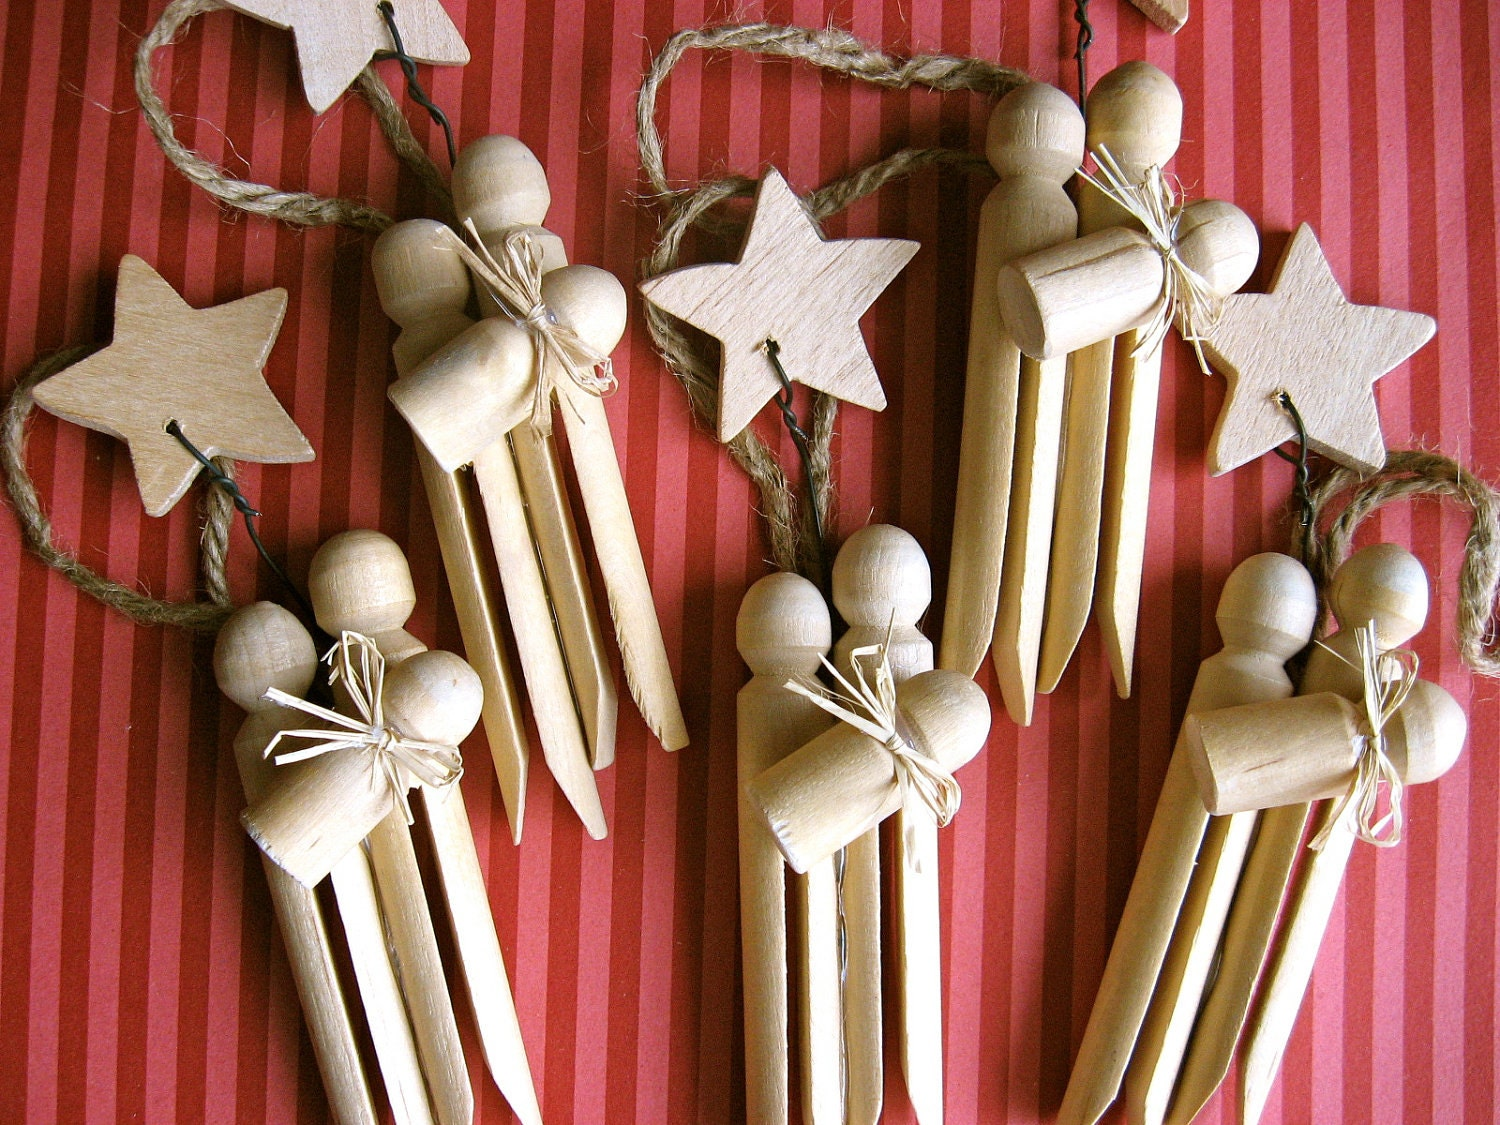 Clothespin Nativity Ornaments - 25 Handmade Christmas Ideas over at the36thavenue.com